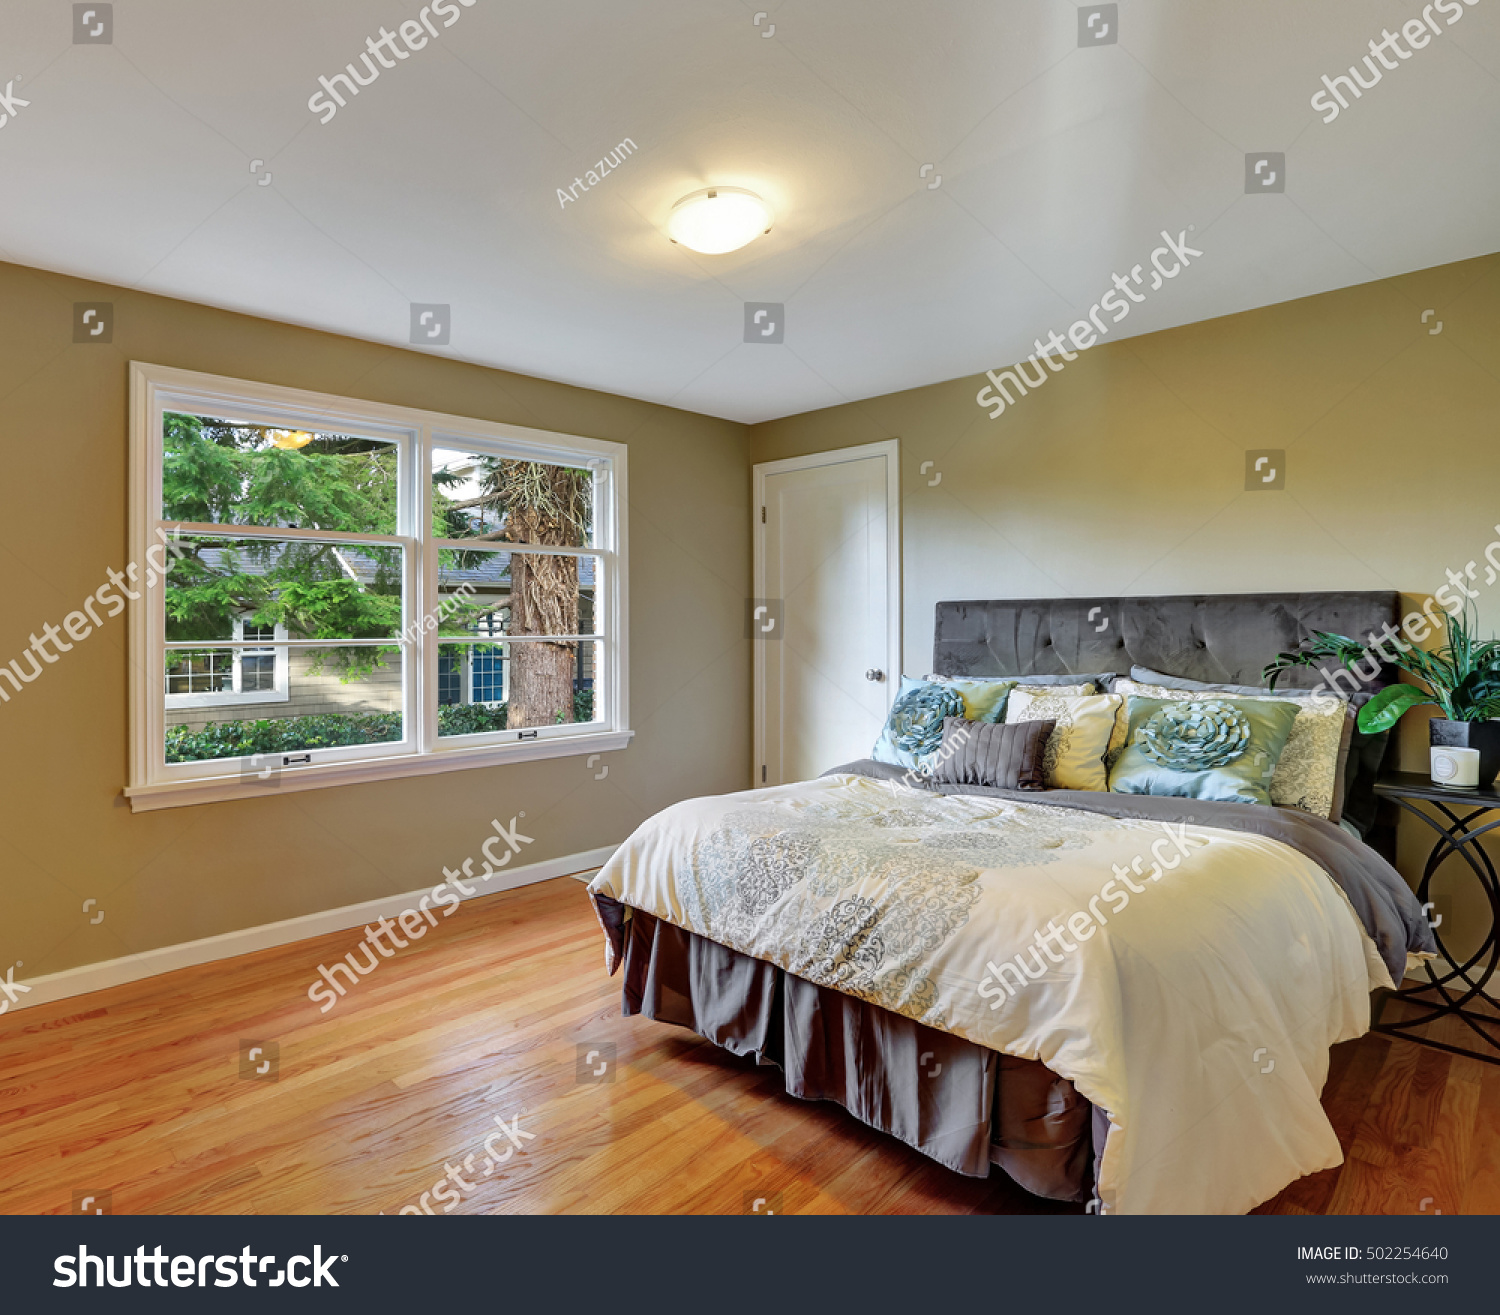 Green Bedroom Interior With Hardwood Floor And Queen Size Bed With